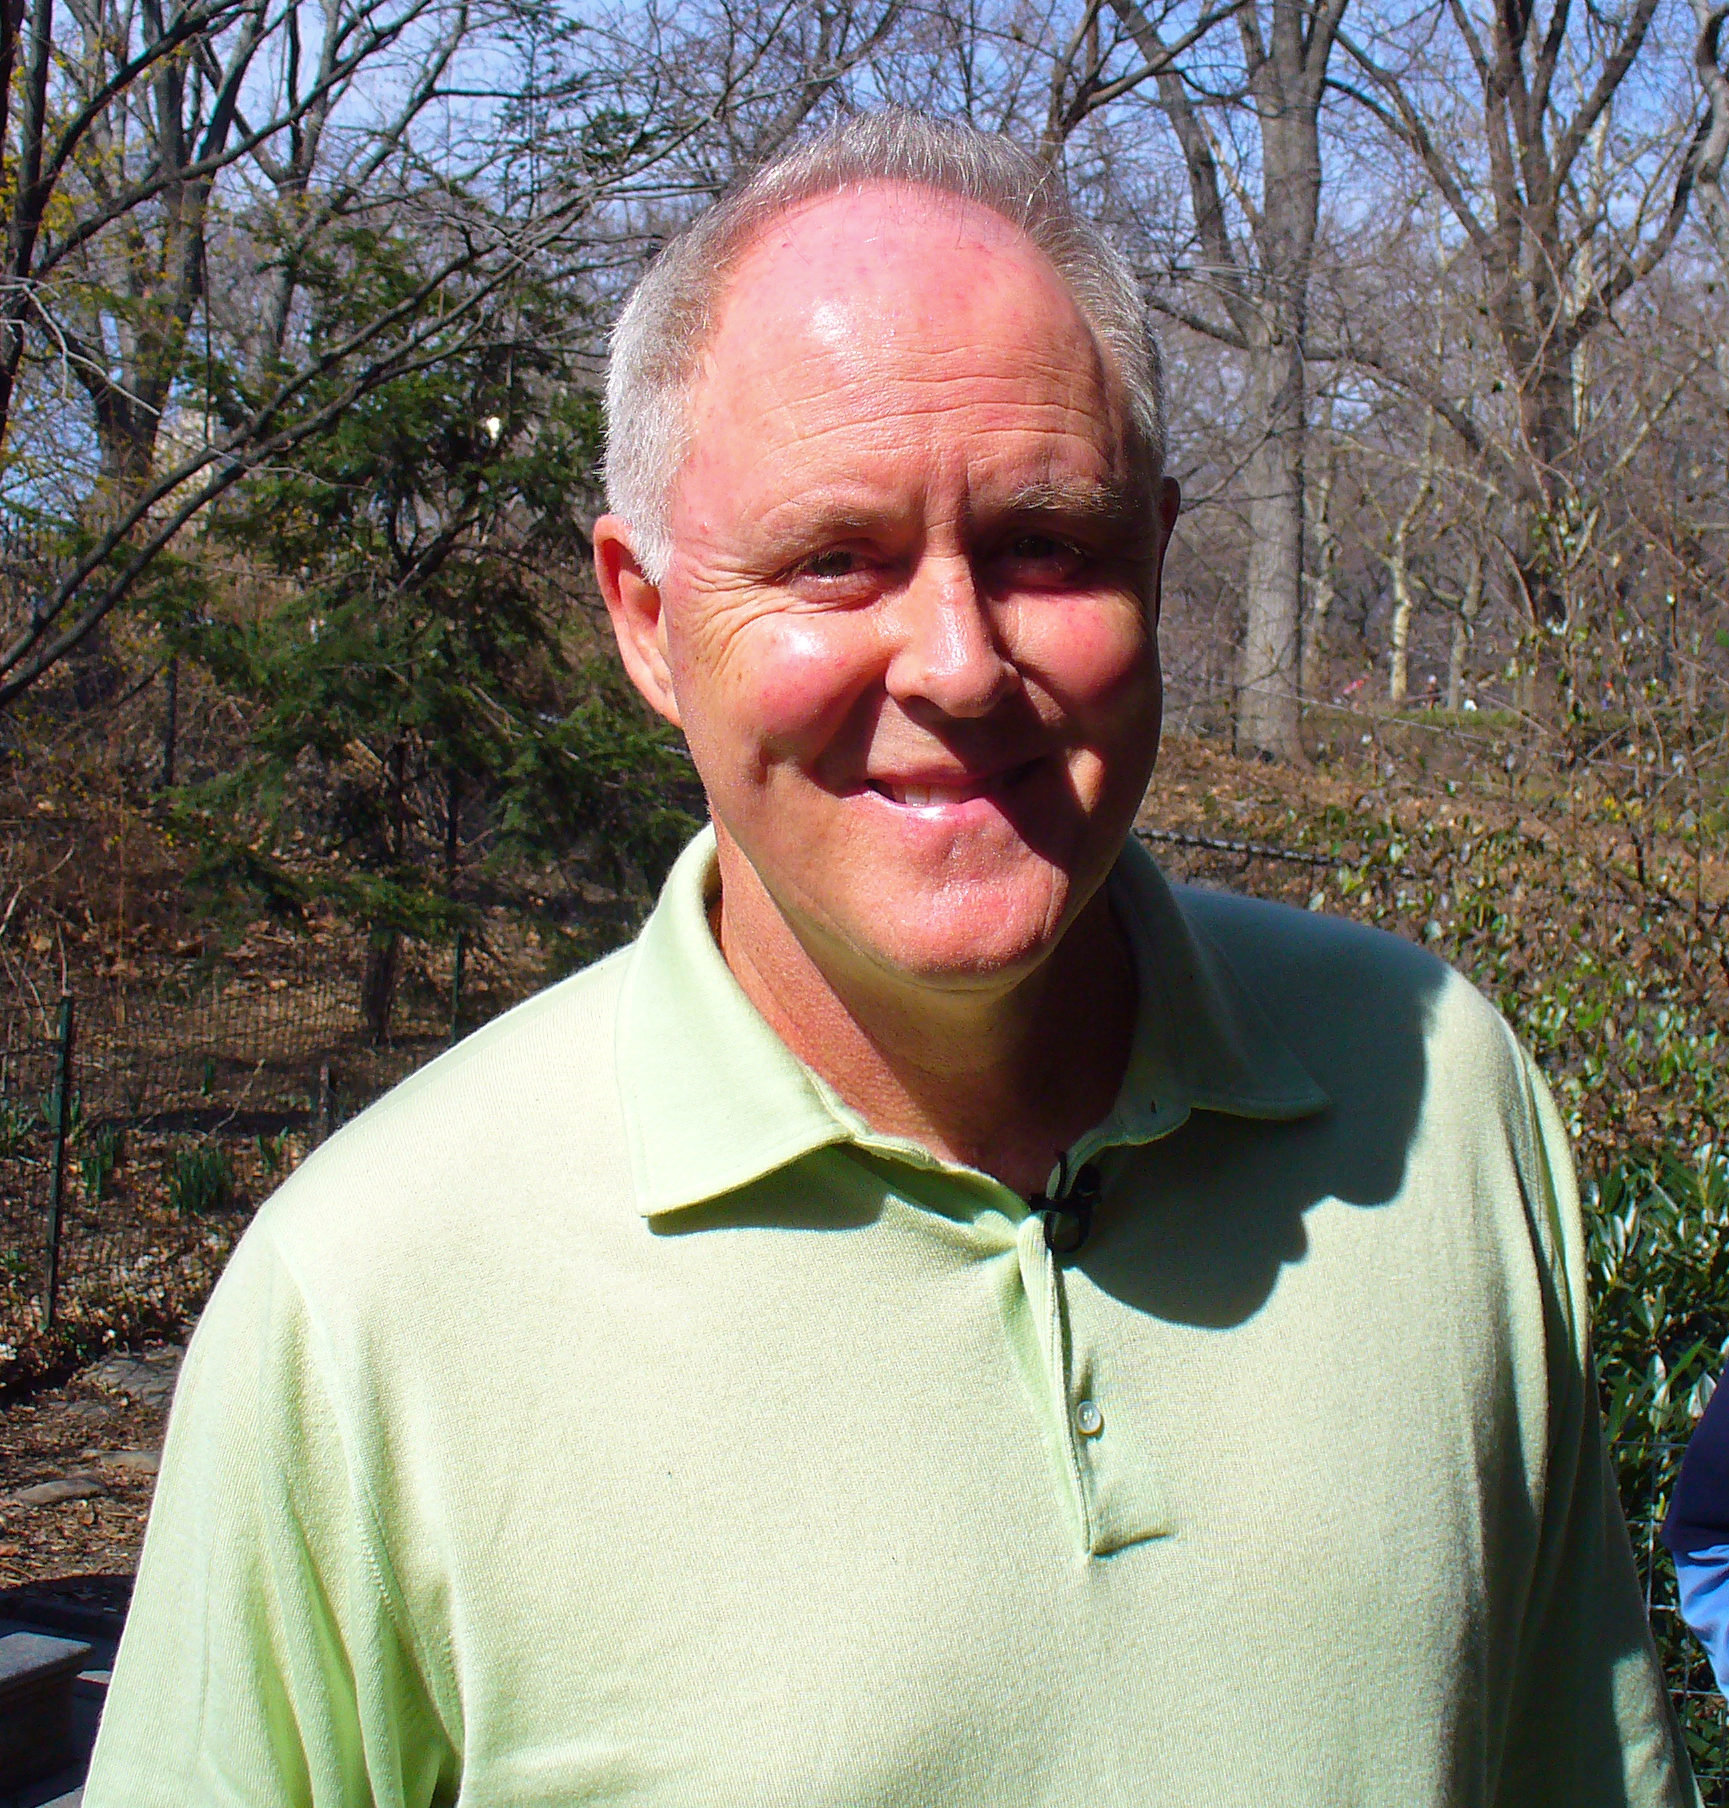 Lithgow pictured in 2007